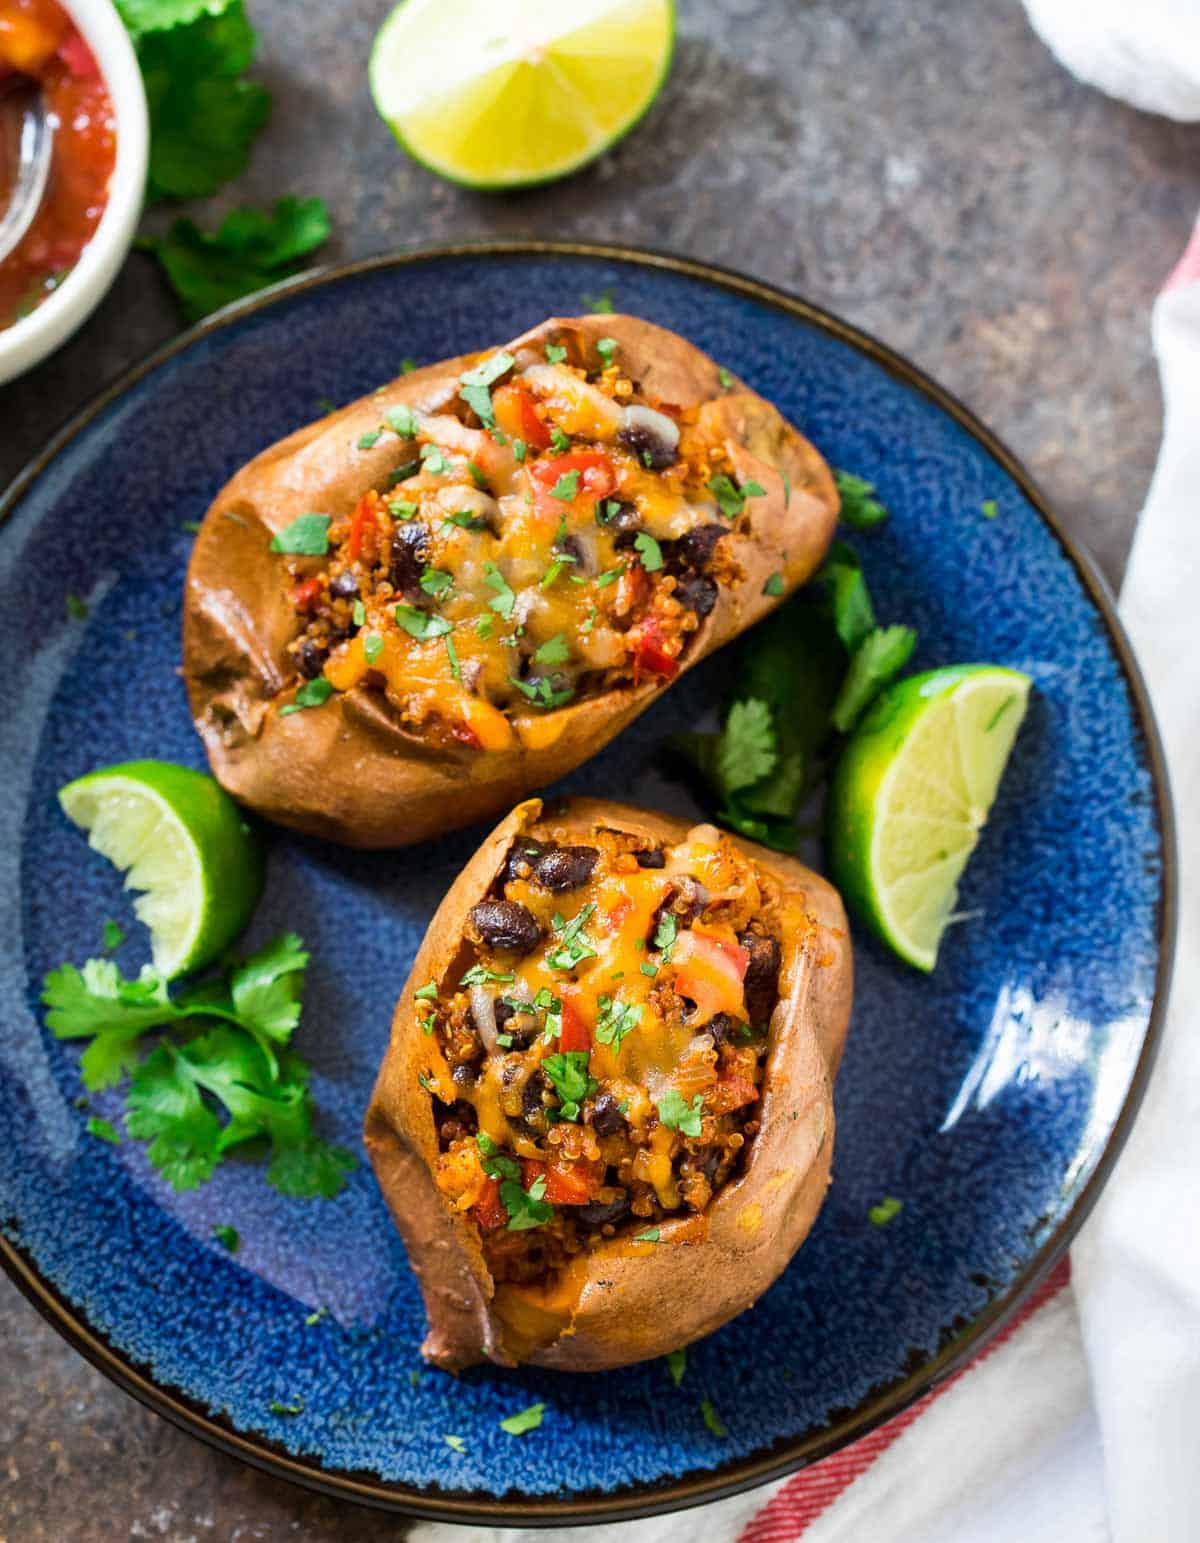 Southwest Stuffed Sweet Potatoes with Black Beans and Quinoa